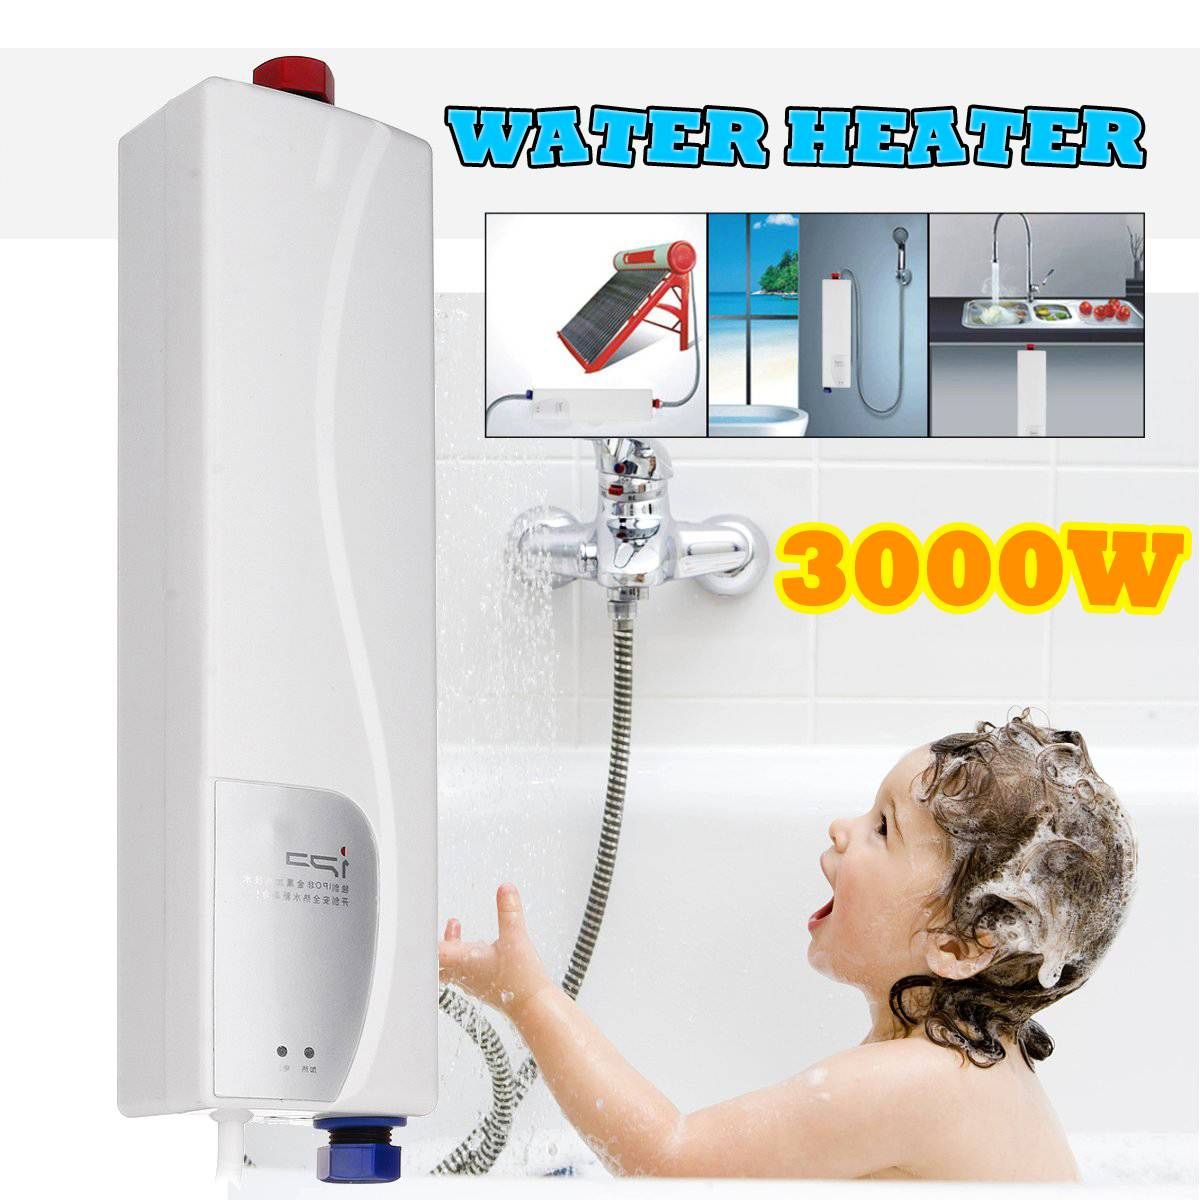 3000W Portable Mini Instant Electric Mini Tankless Water Heater Hot Instantaneous Water Heater System For Kitchen Bathroom